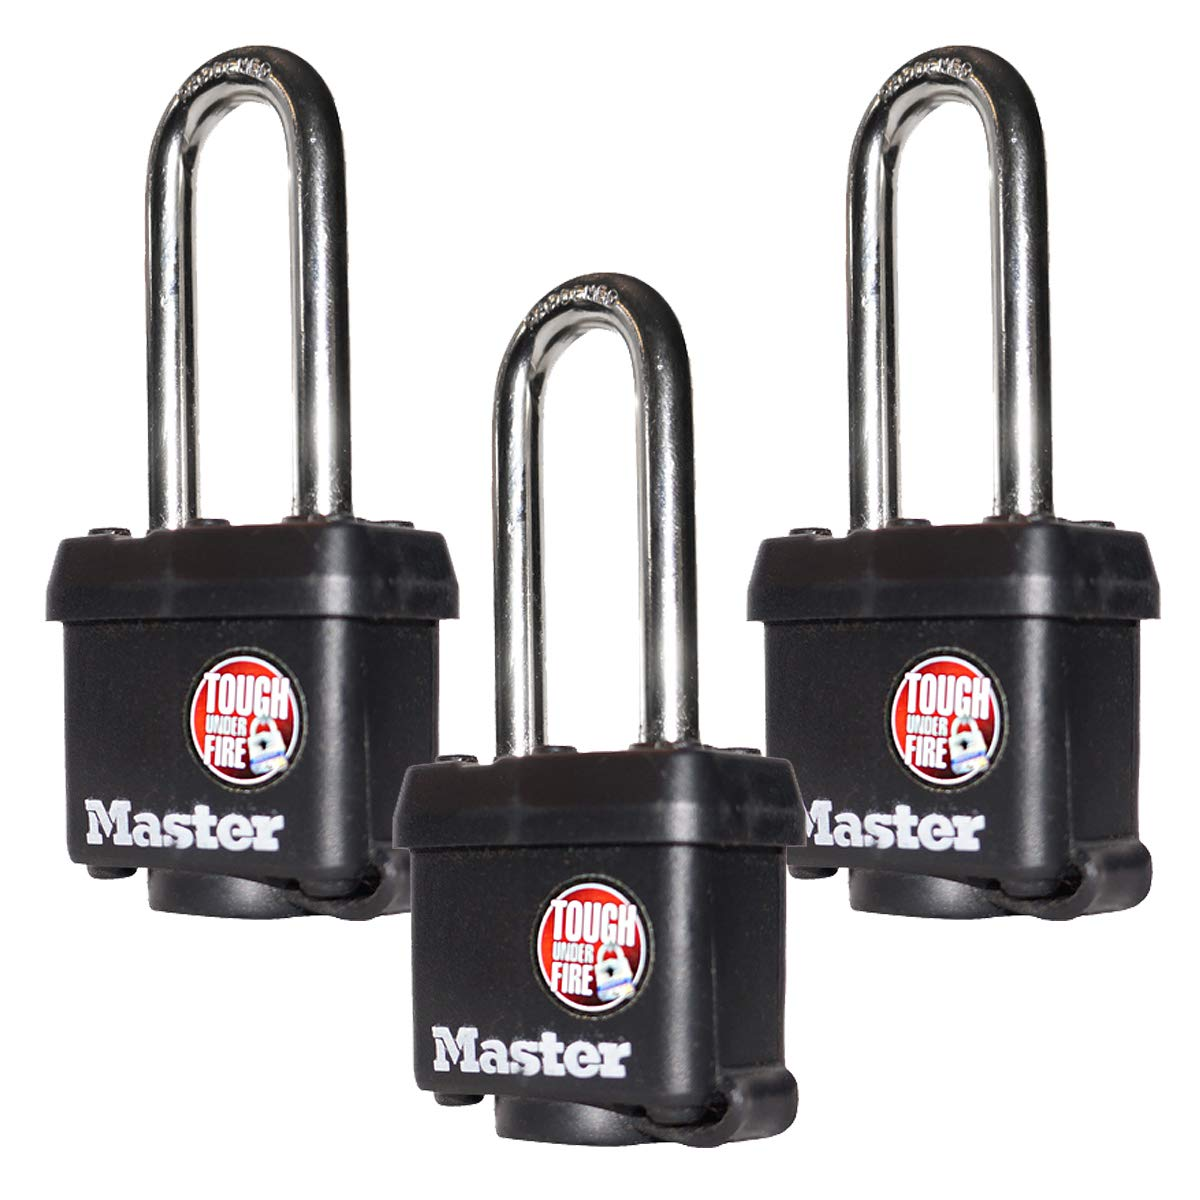 Master Lock (3 Keyed Alike Padlocks w/Thermoplastic Coating and 2''(51mm) Tall Shackle - Model # 311KALH-3 by Master Lock